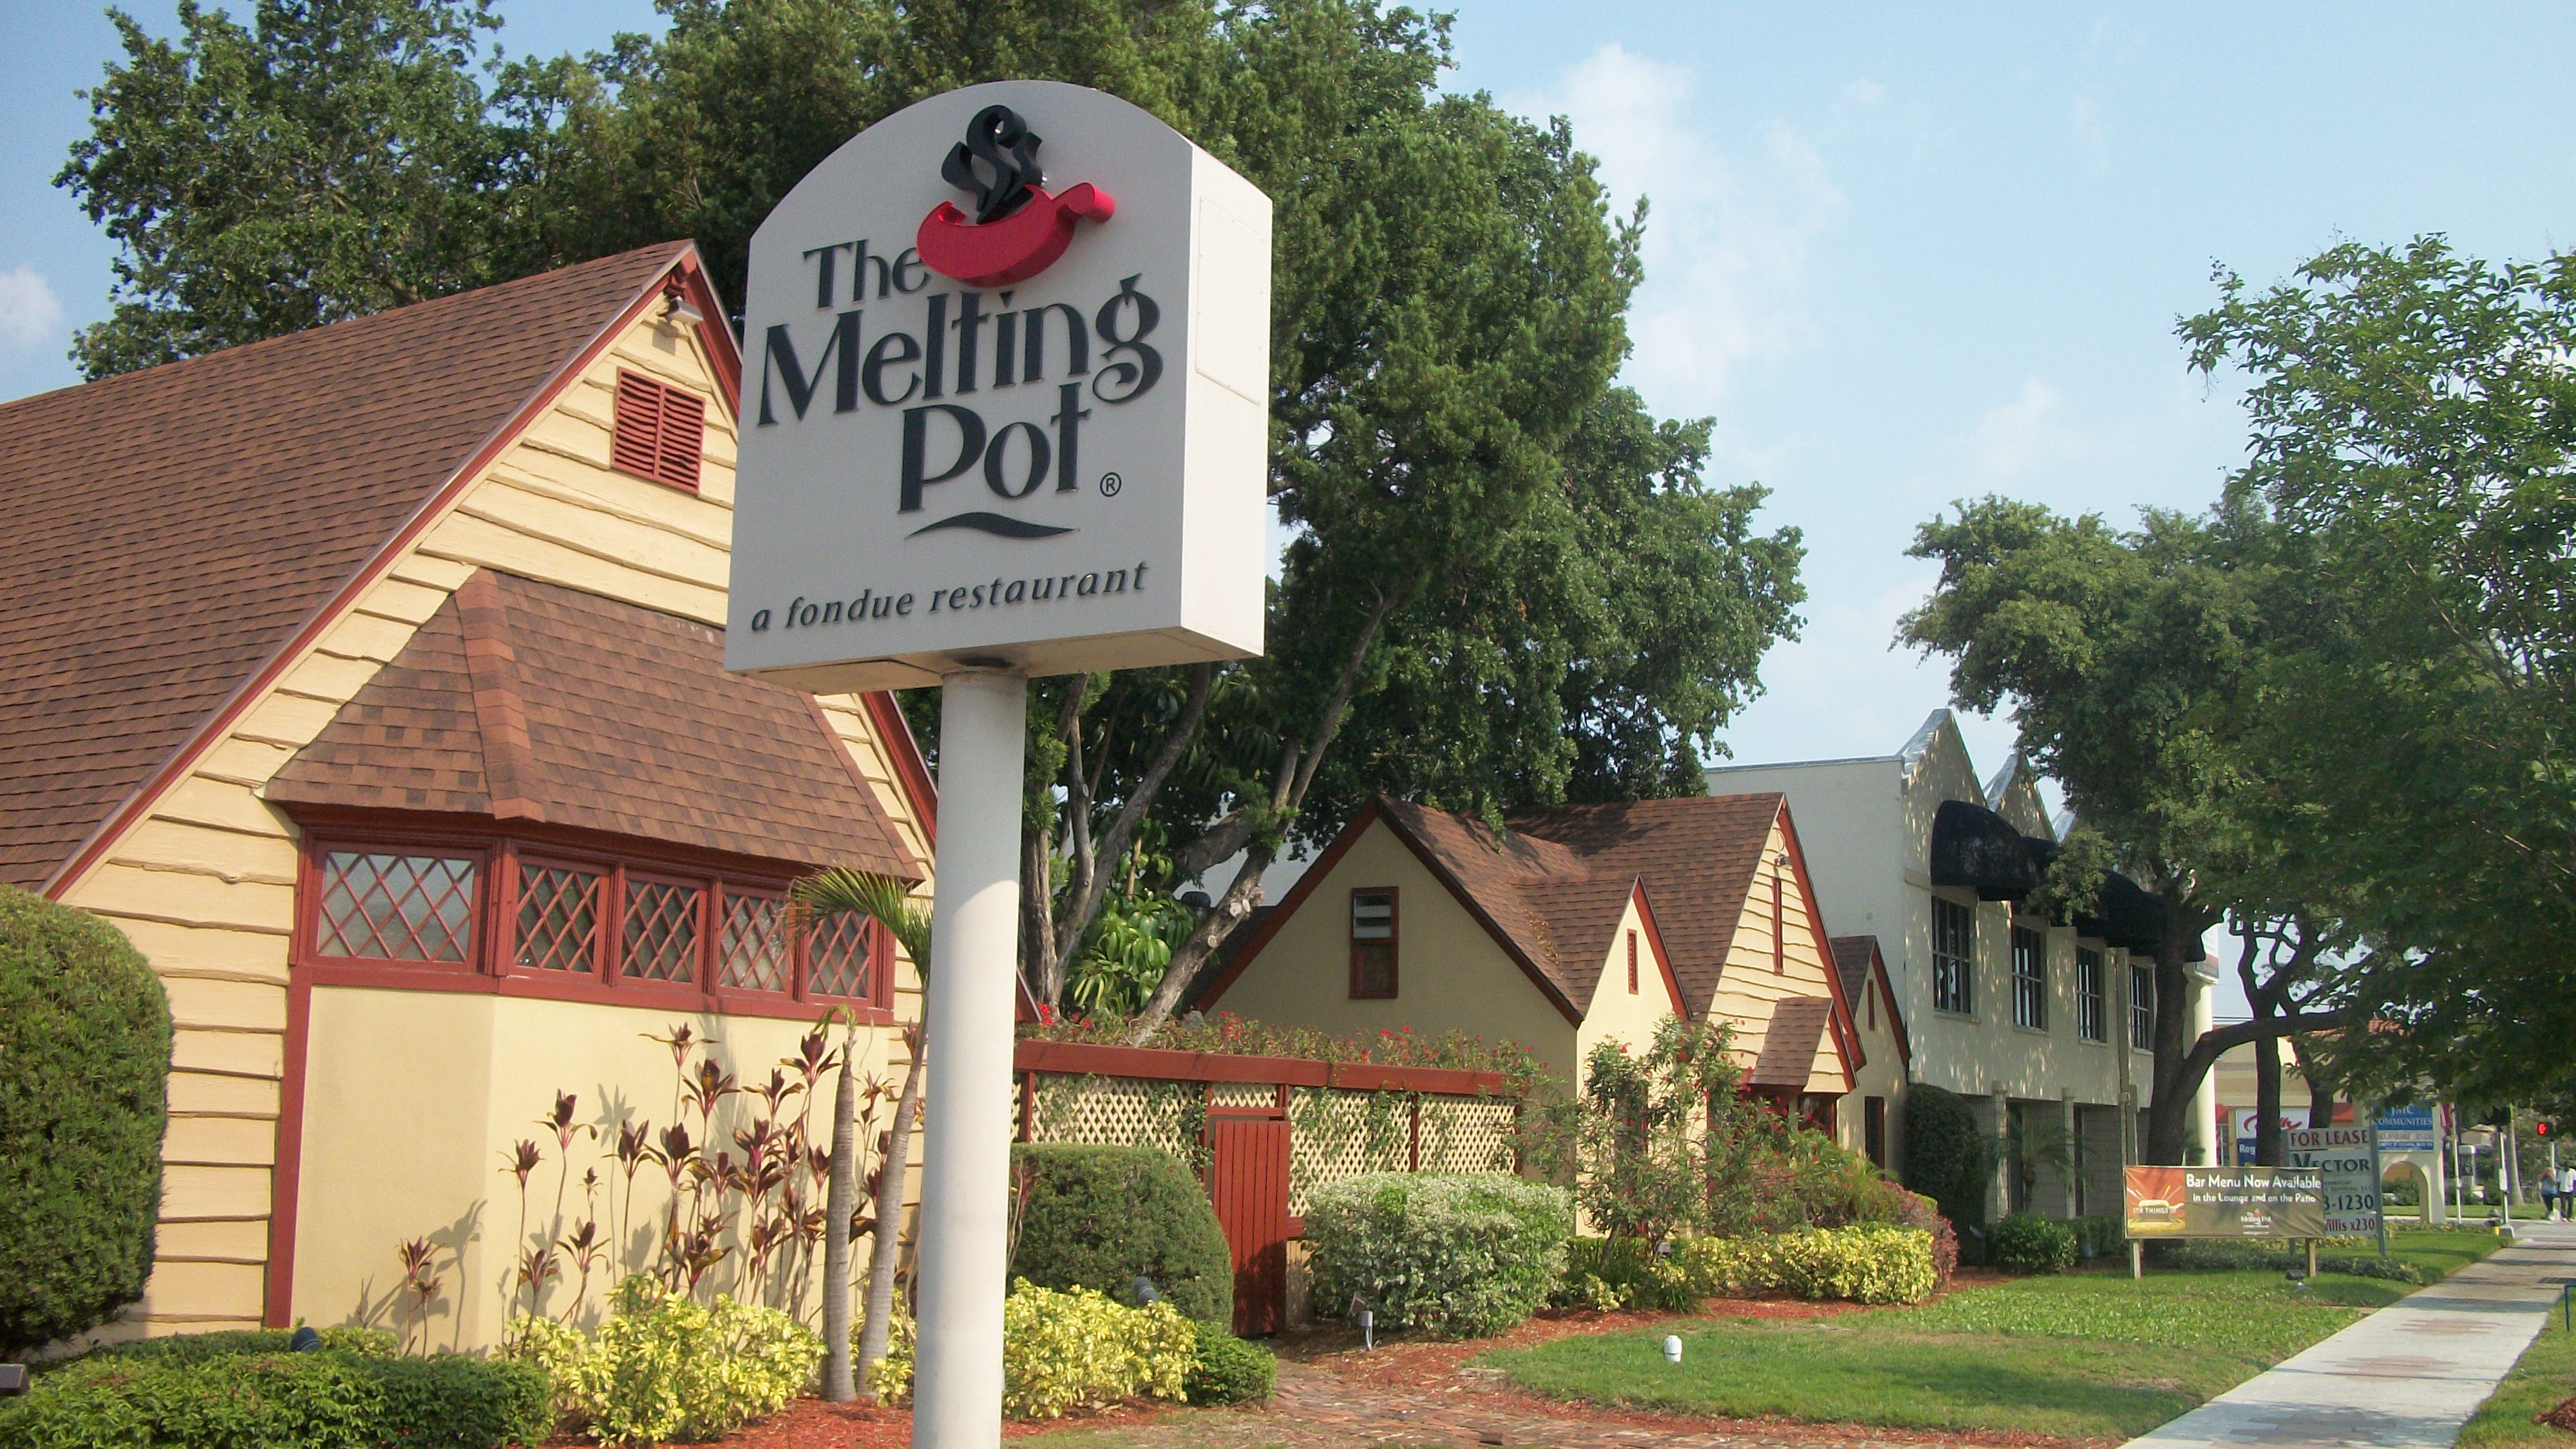 an analysis of the definition of melting pot The melting pot has defined the fondue experience niche the influence siblings have on each other across the american dining scene beyond the melting pot: cultural transmission post.